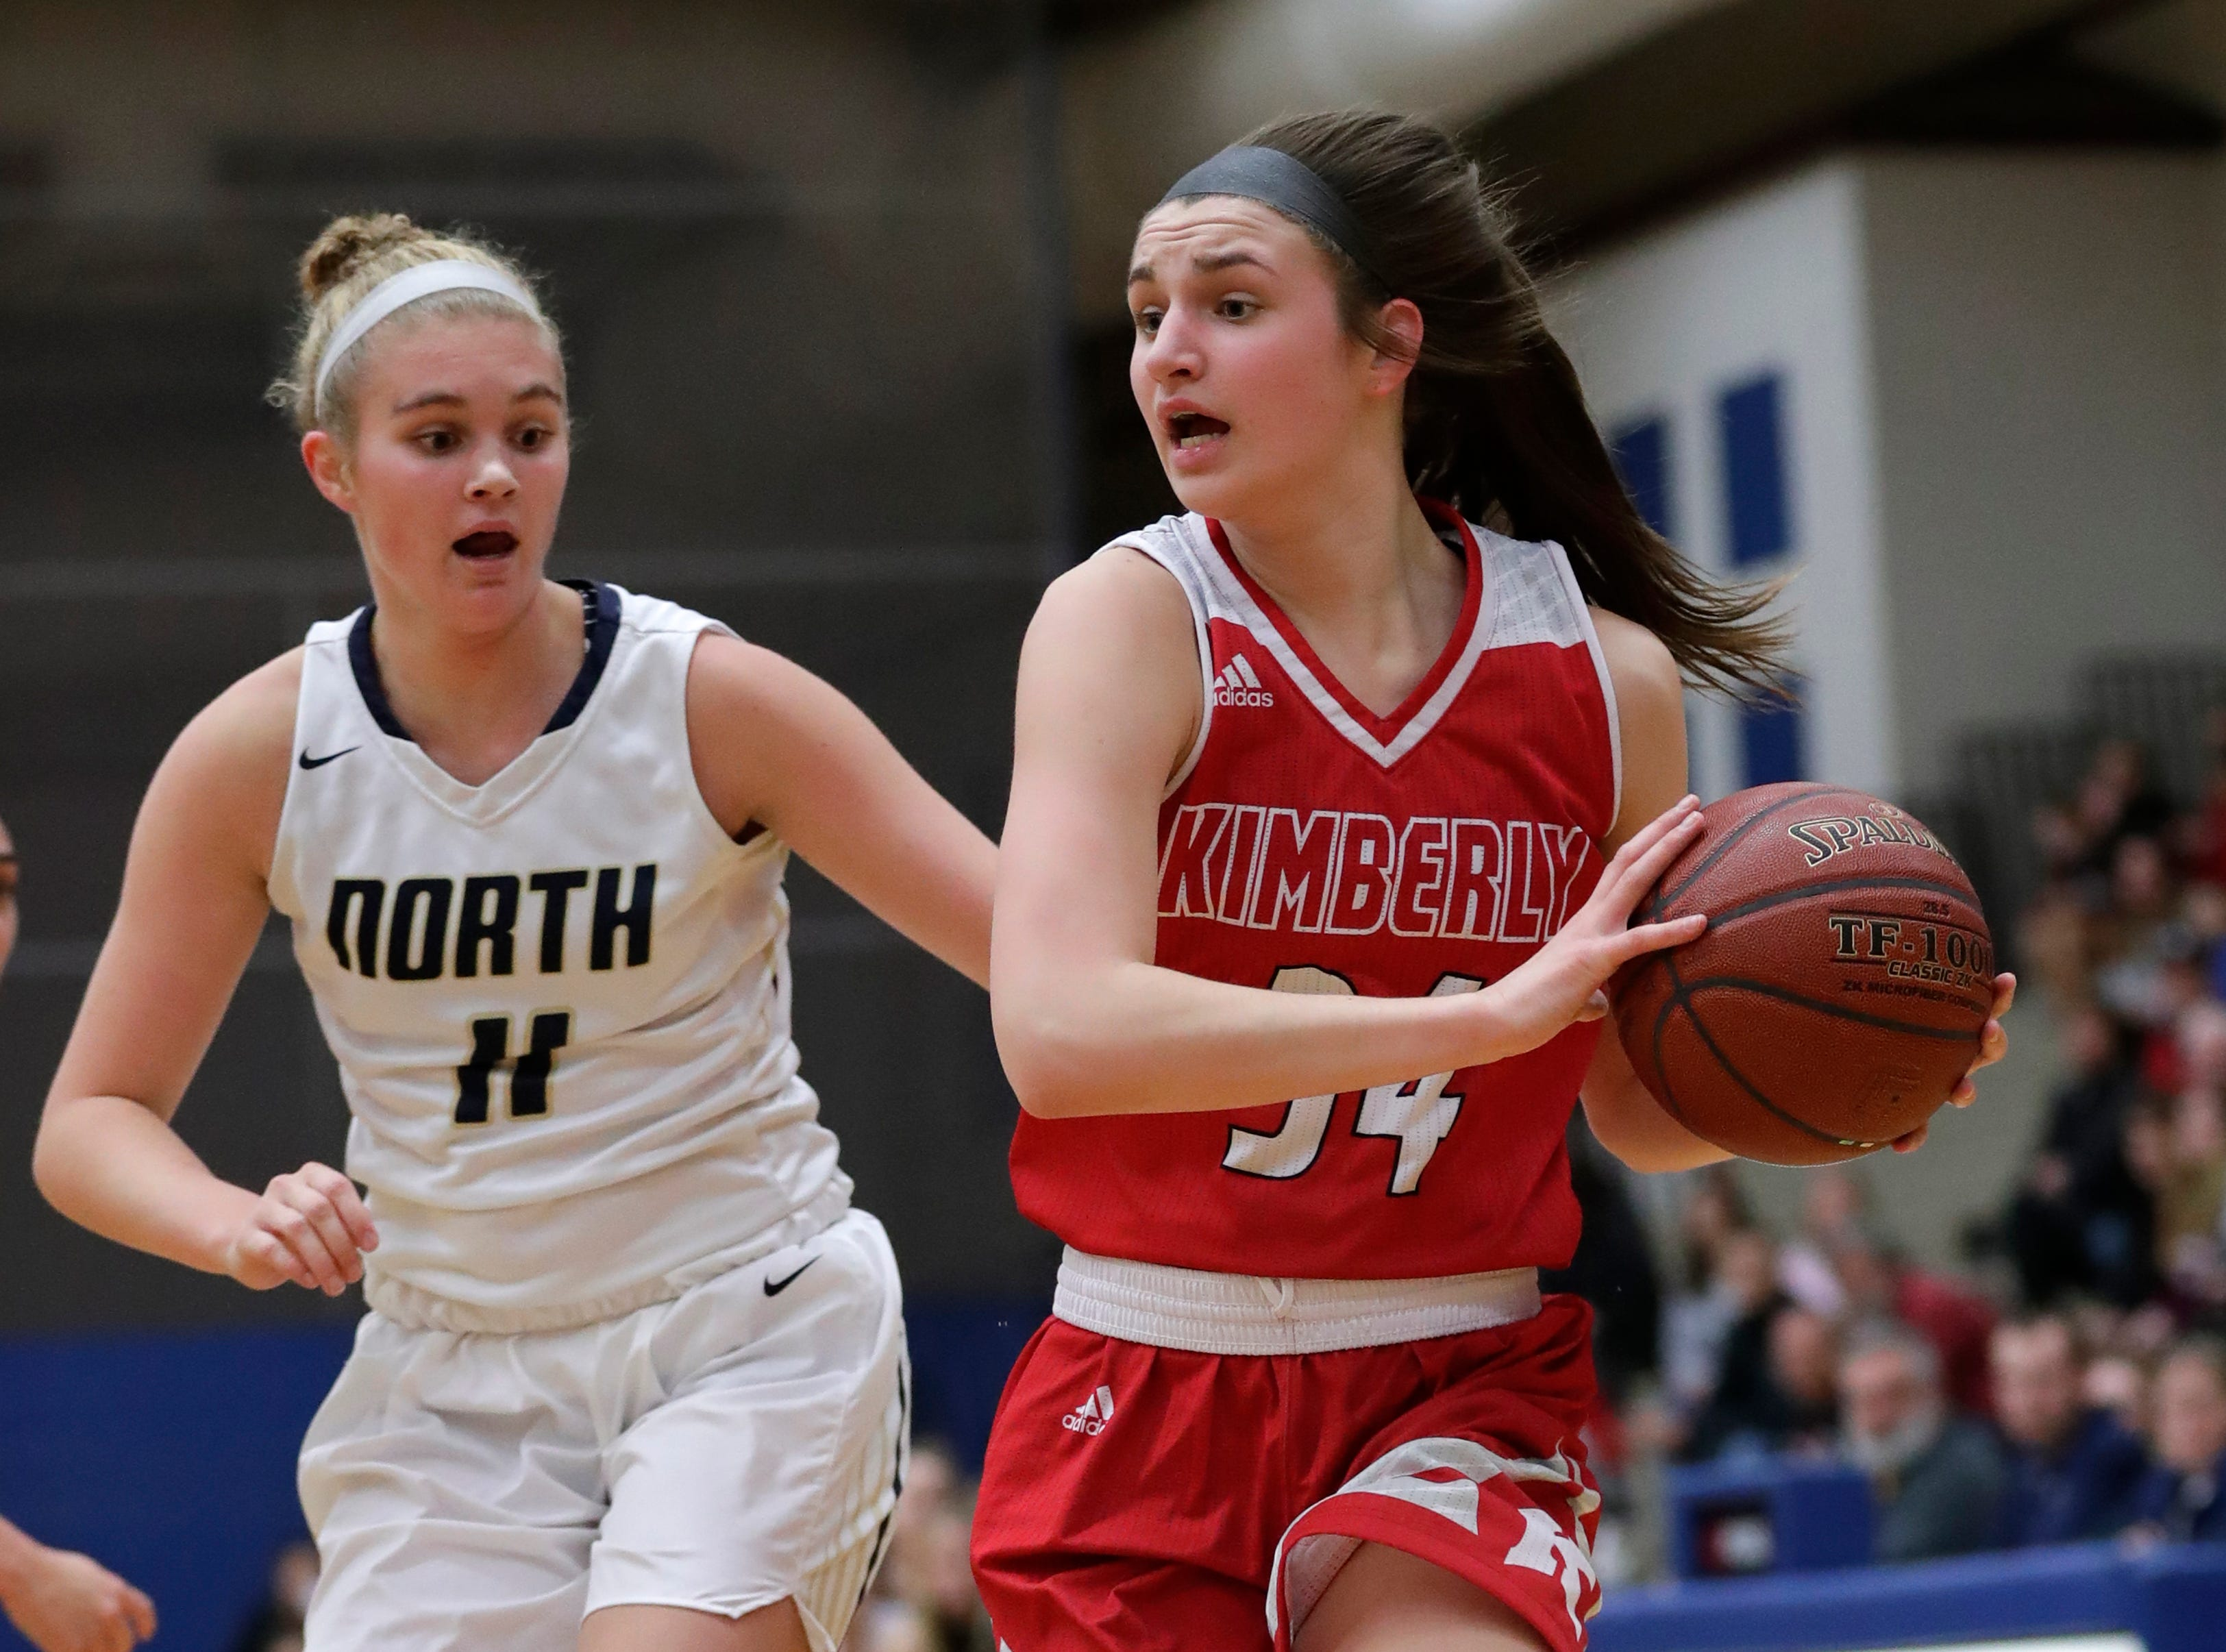 Appleton North High School's Emma Erickson (11) defends against Kimberly High School's Maddy Schreiber (34) during their girls basketball game Tuesday, January 8, 2019, in Appleton, Wis. Dan Powers/USA TODAY NETWORK-Wisconsin